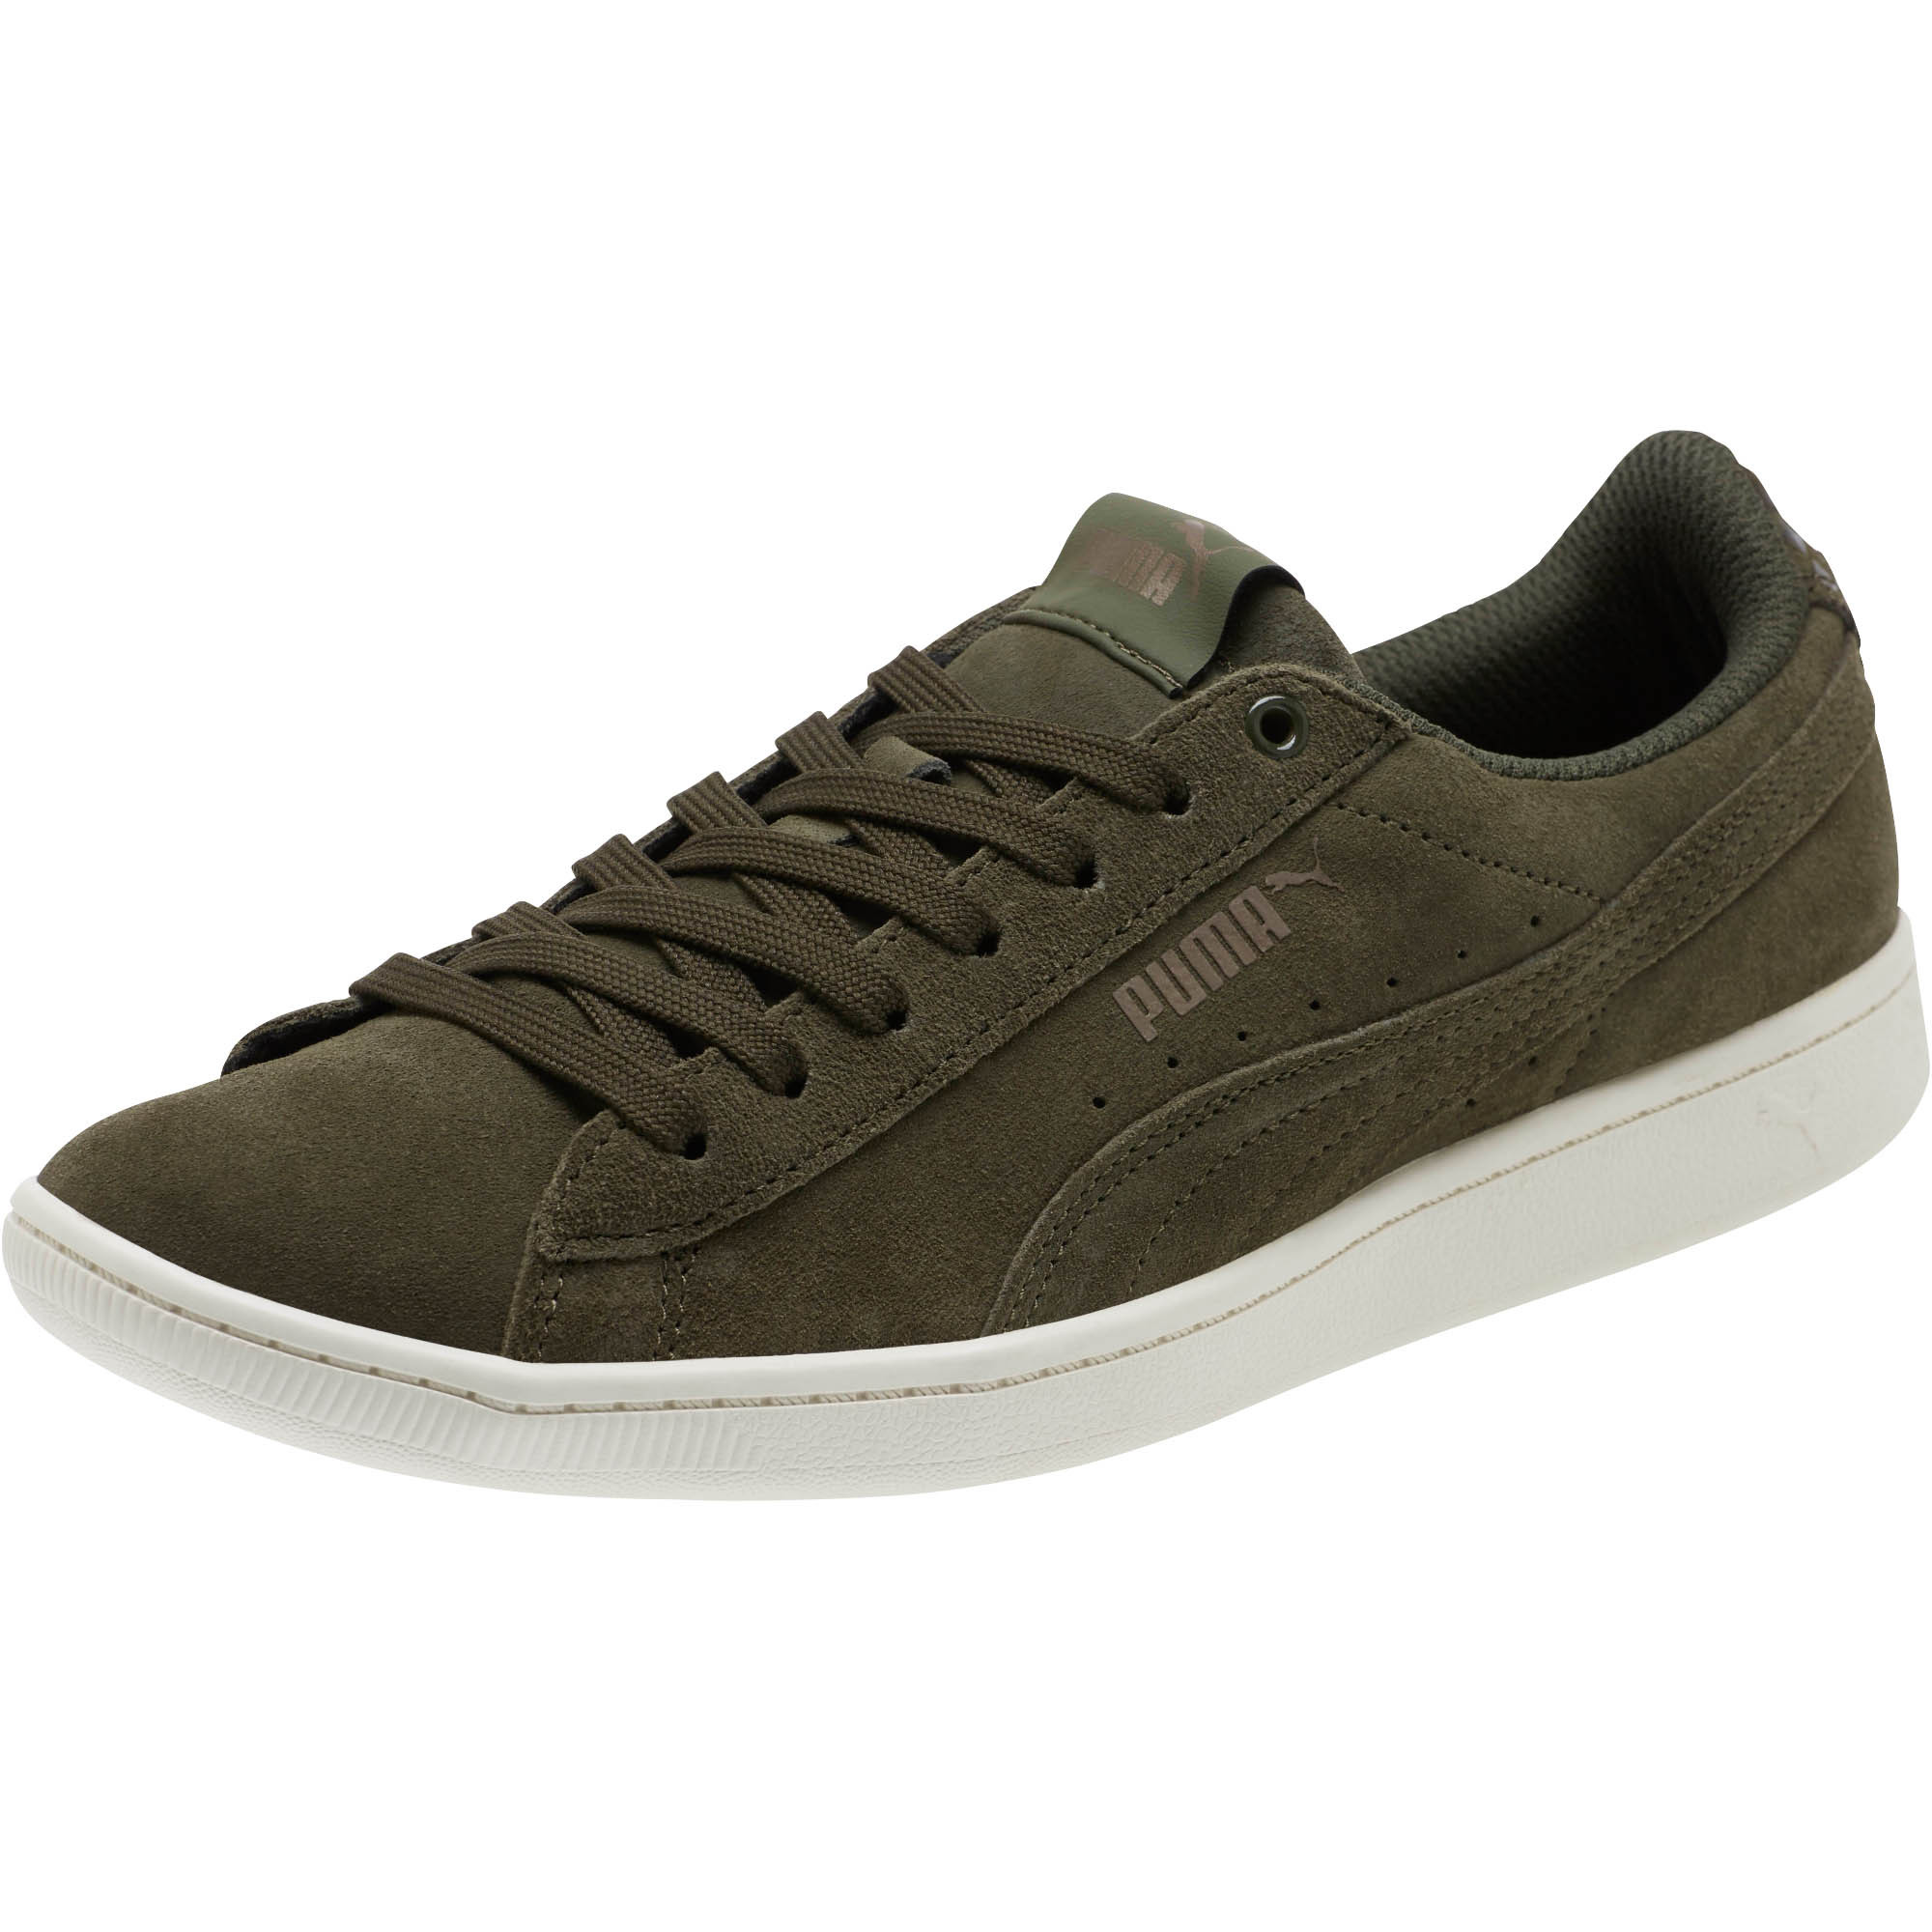 Official Puma Store  PUMA Vikky All-Over Suede Women s Sneakers ... 54f7c36551